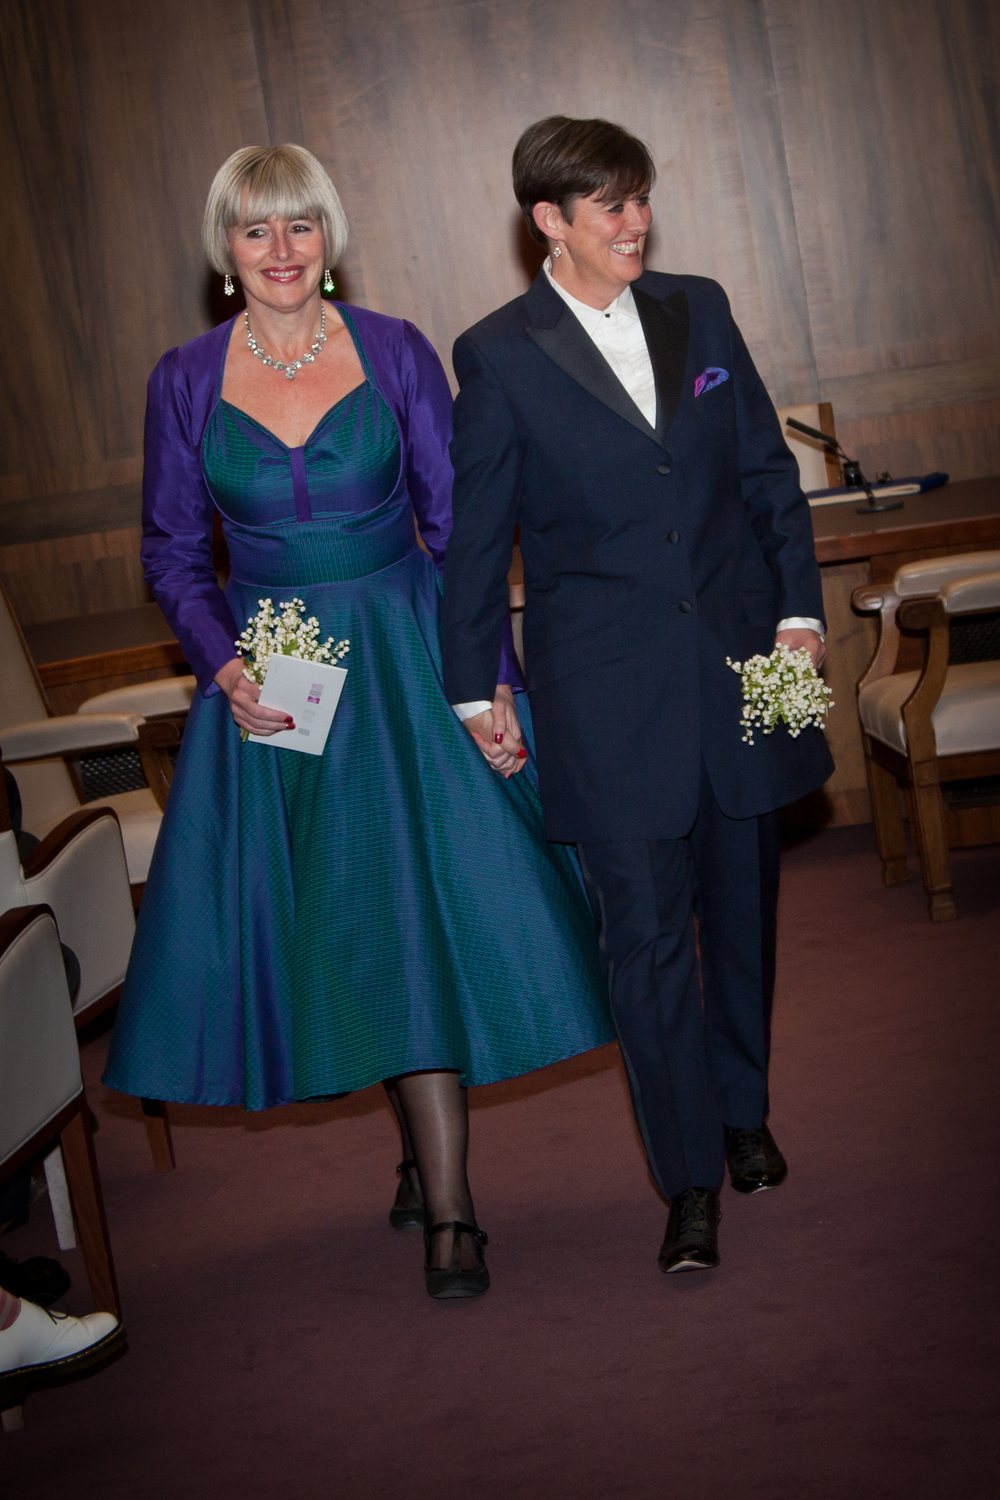 jane-pallant-civil-partnership-same-sex-wedding-lesbian-dinner-suit-all-uk-made-wool-mohair-midnight-blue-bespoke.jpg